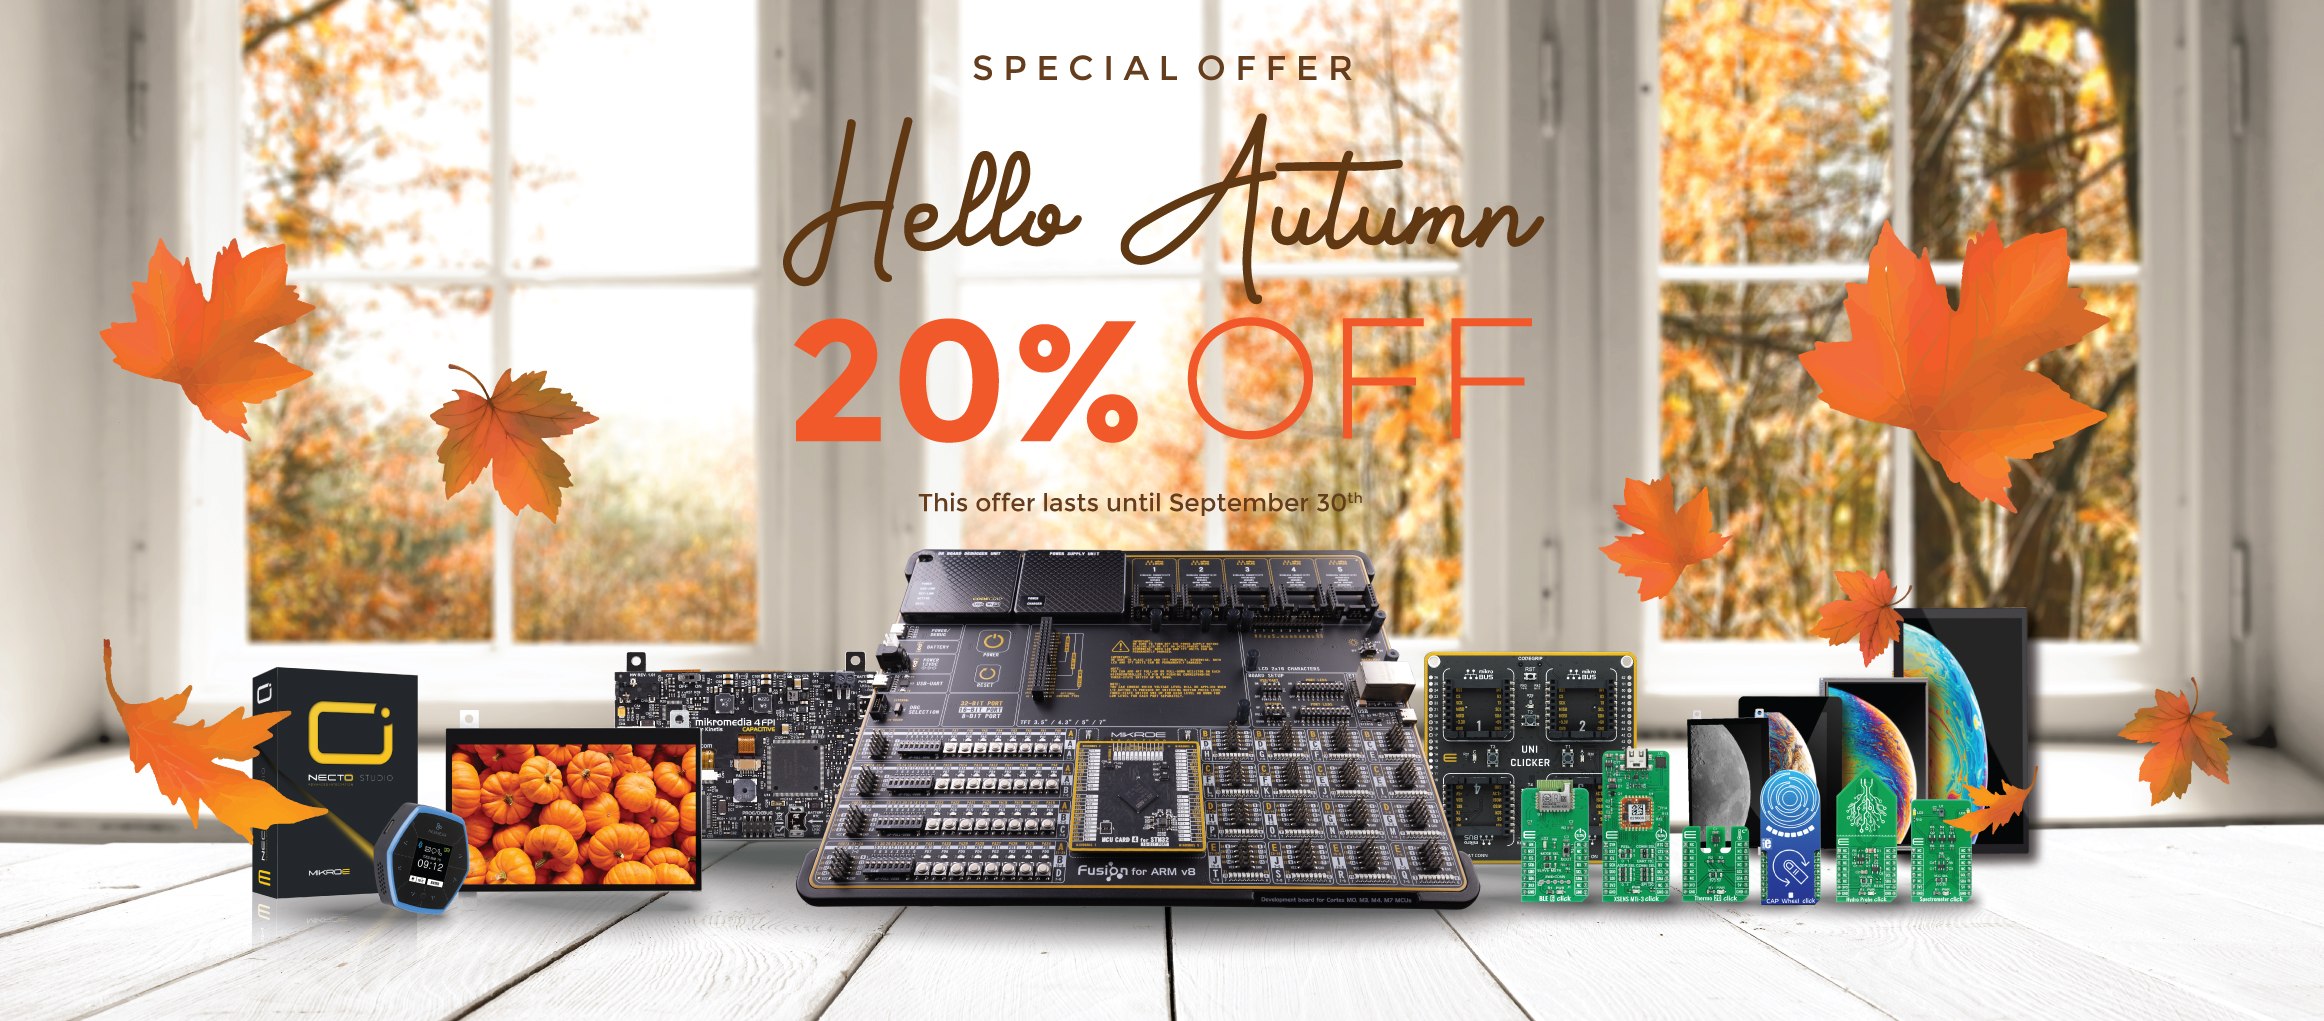 Fall into Autumn with 20% OFF